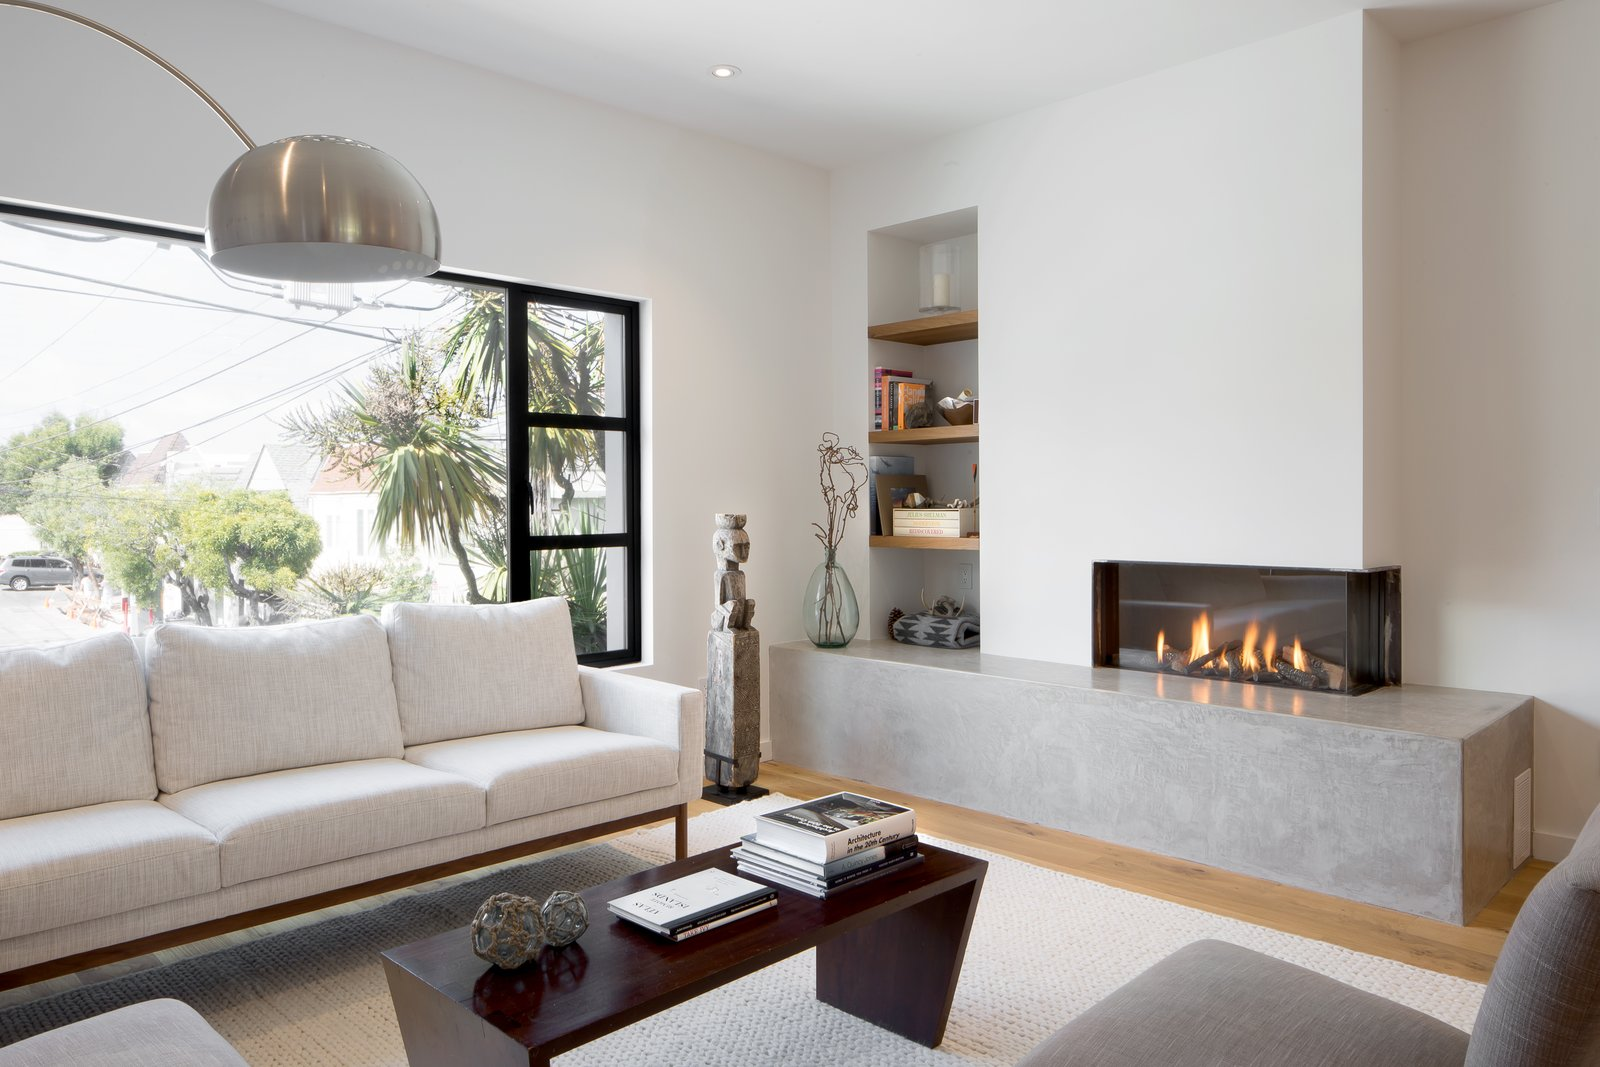 Living room Tagged: Living Room, Sofa, Light Hardwood Floor, Coffee Tables, Corner Fireplace, Floor Lighting, and Gas Burning Fireplace.  27th Street - Noe Valley by patrick perez/designpad architecture